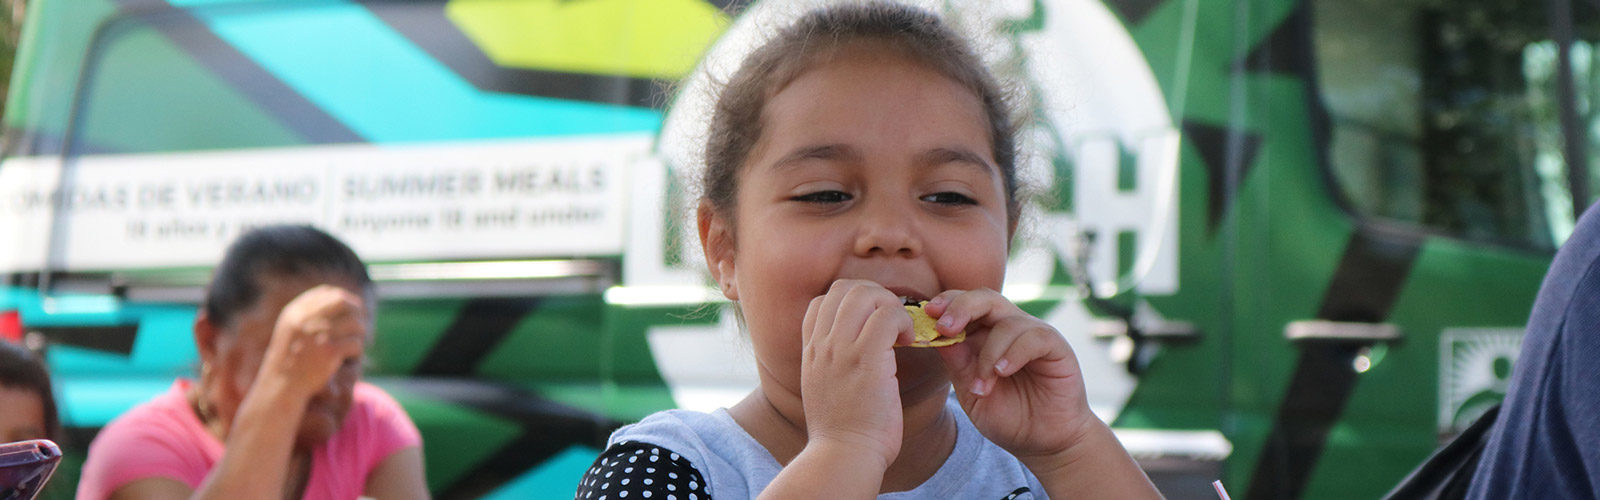 Child eats a lunch at summer meals